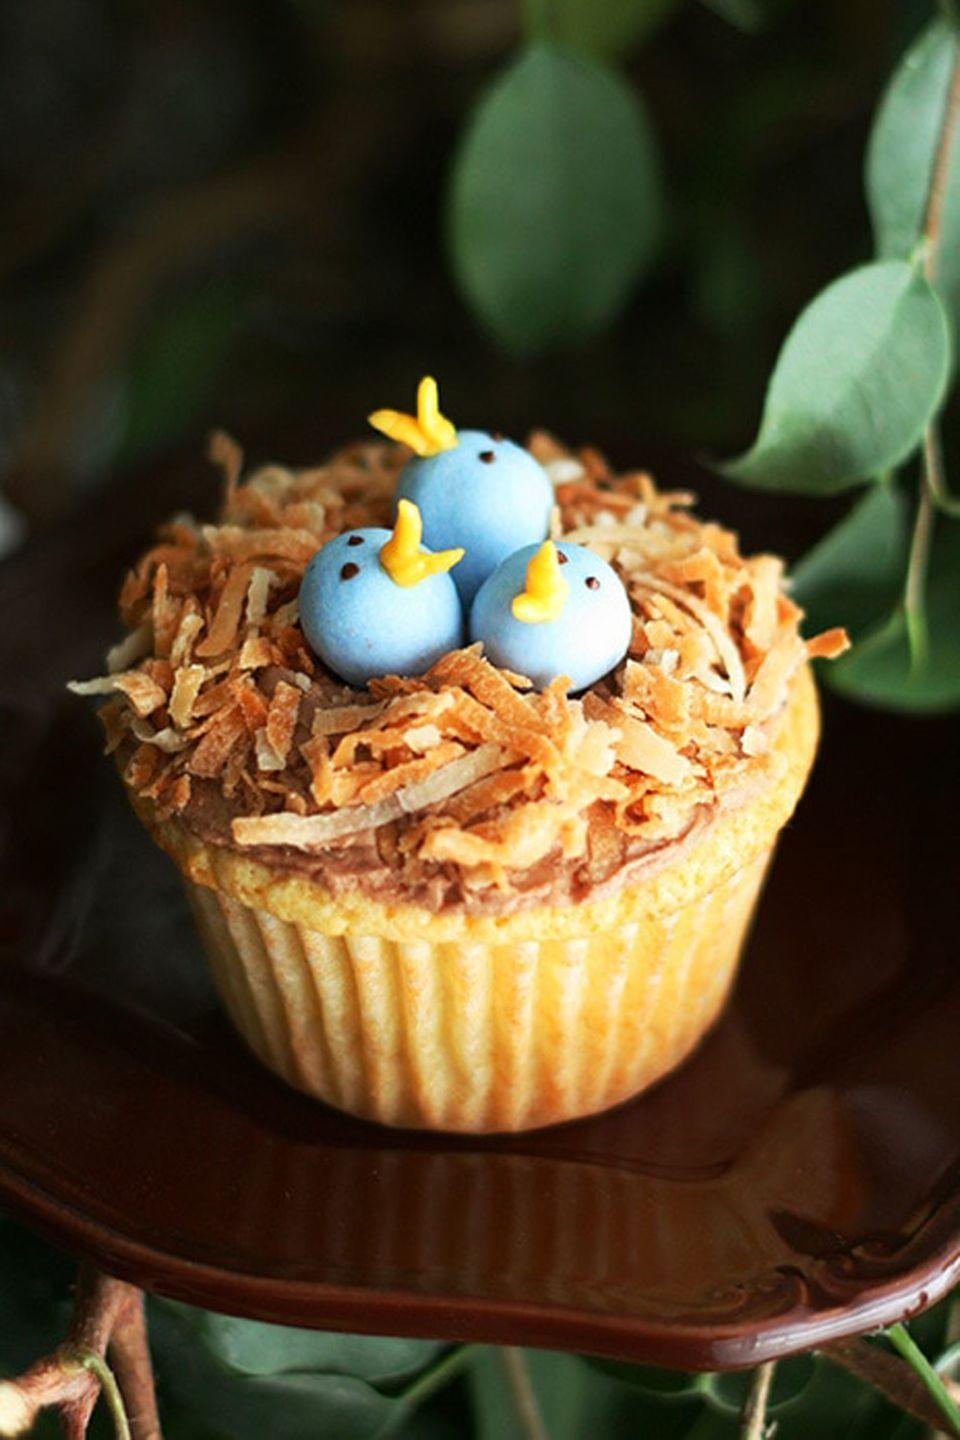 """<p>Hey, baking newbies: These coconut-covered cupcakes will hide any frosting imperfections.</p><p> <a href=""""https://www.cookingclassy.com/birds-nest-cupcakes/"""" rel=""""nofollow noopener"""" target=""""_blank"""" data-ylk=""""slk:Get the recipe from Cooking Classy »"""" class=""""link rapid-noclick-resp""""><em>Get the recipe from Cooking Classy »</em></a></p>"""